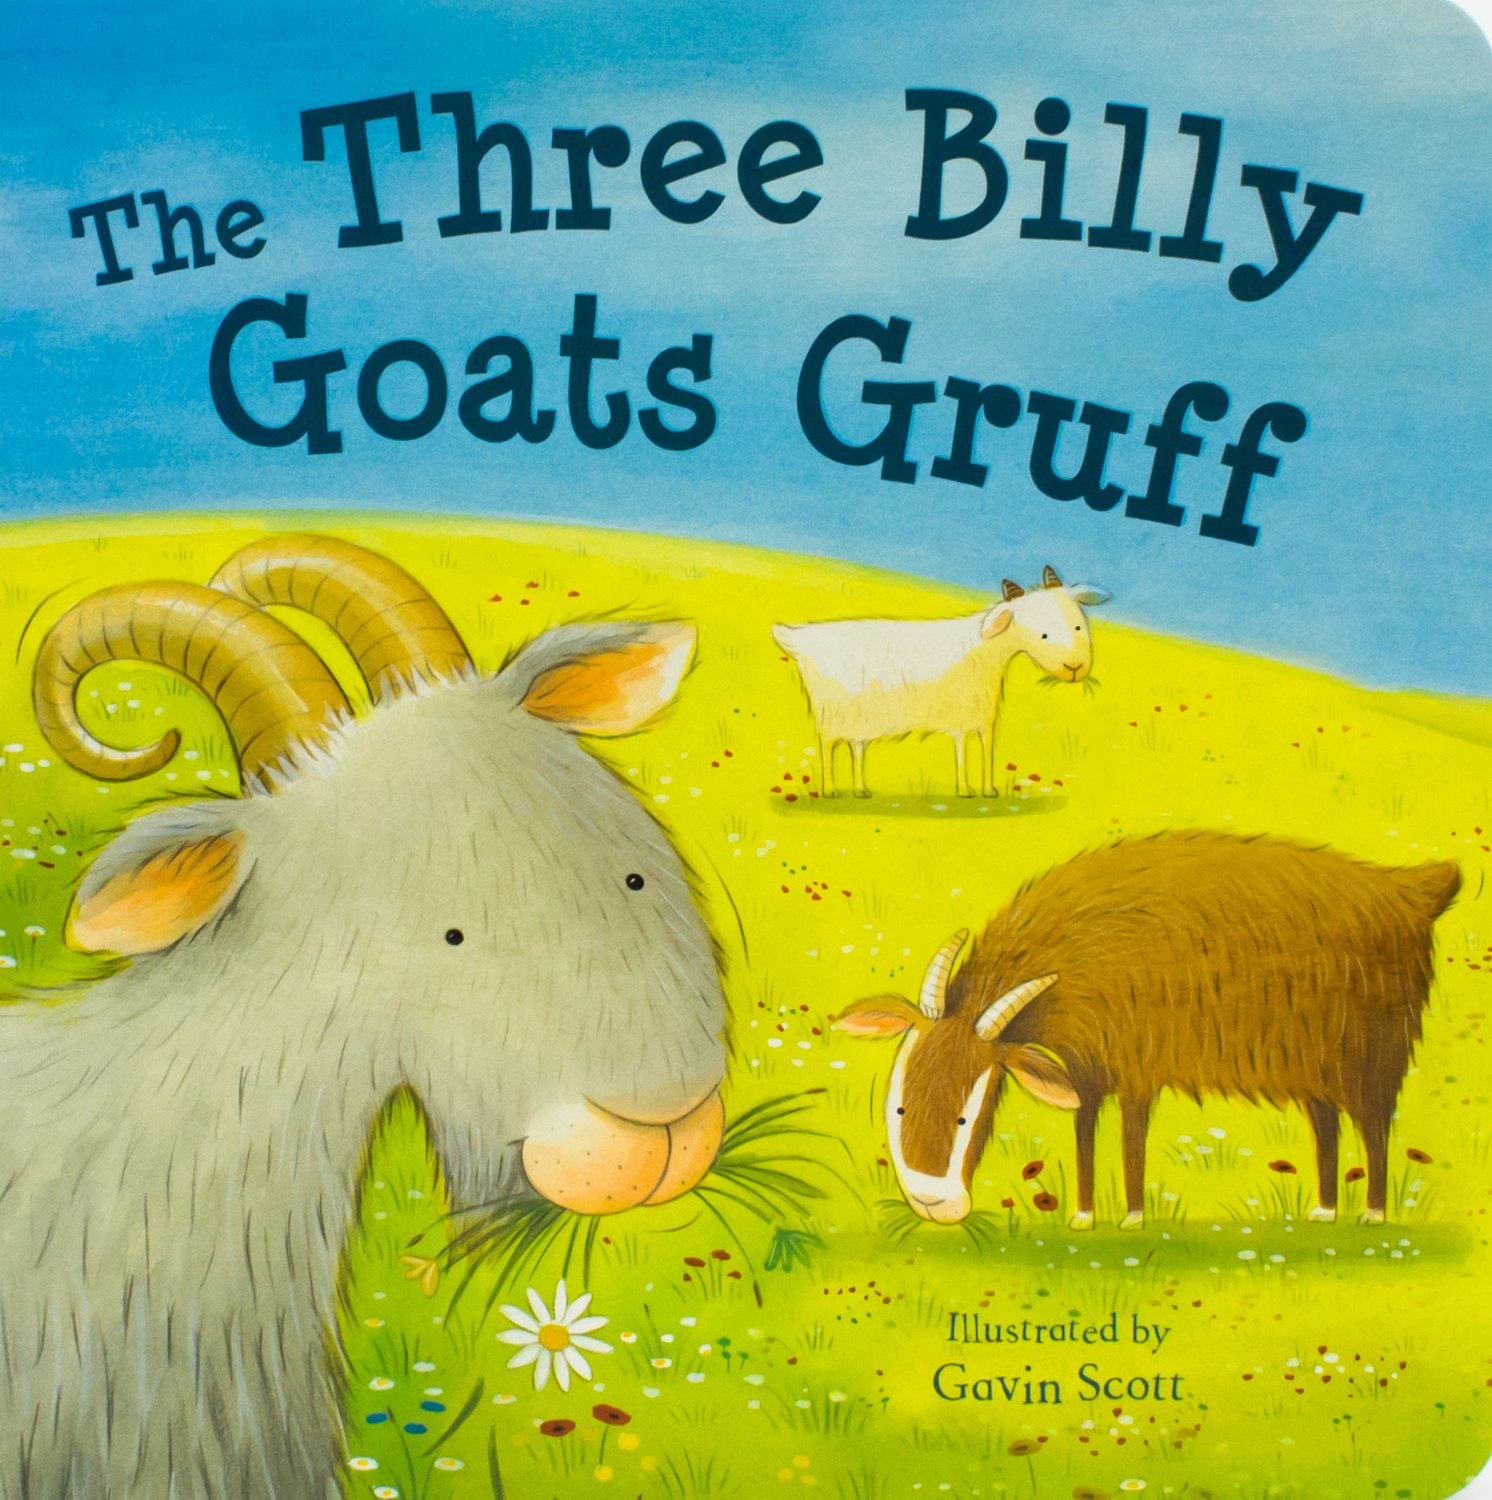 Worksheet Three Billy Goats Gruff Story the three billy goats gruff fairytale boards parragon books 0824921051282 amazon com books